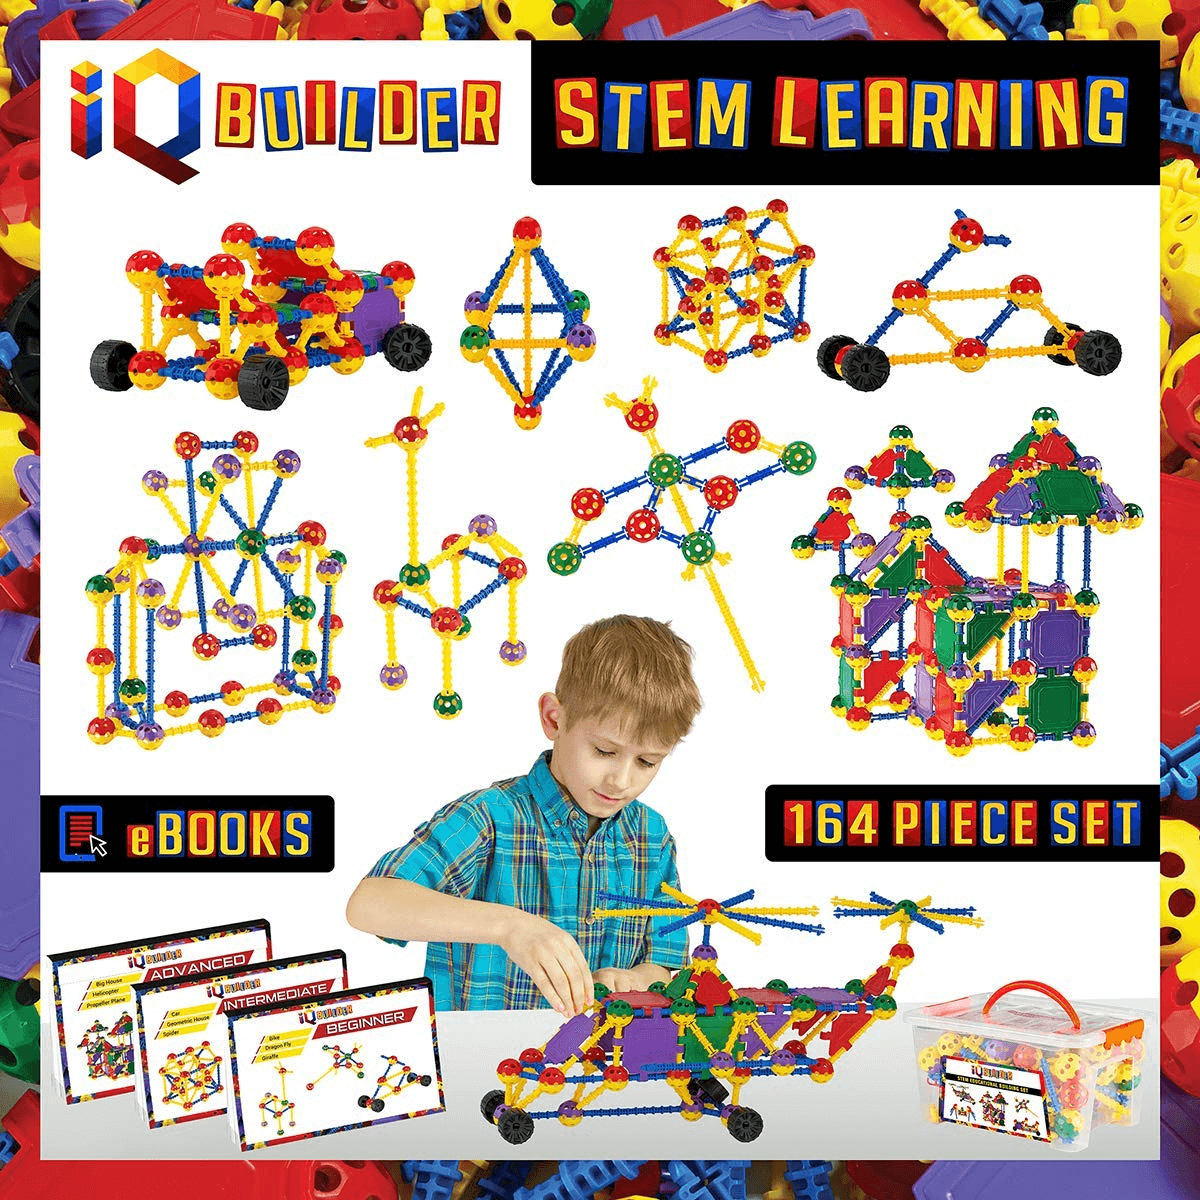 STEM gifts: IQ Builder